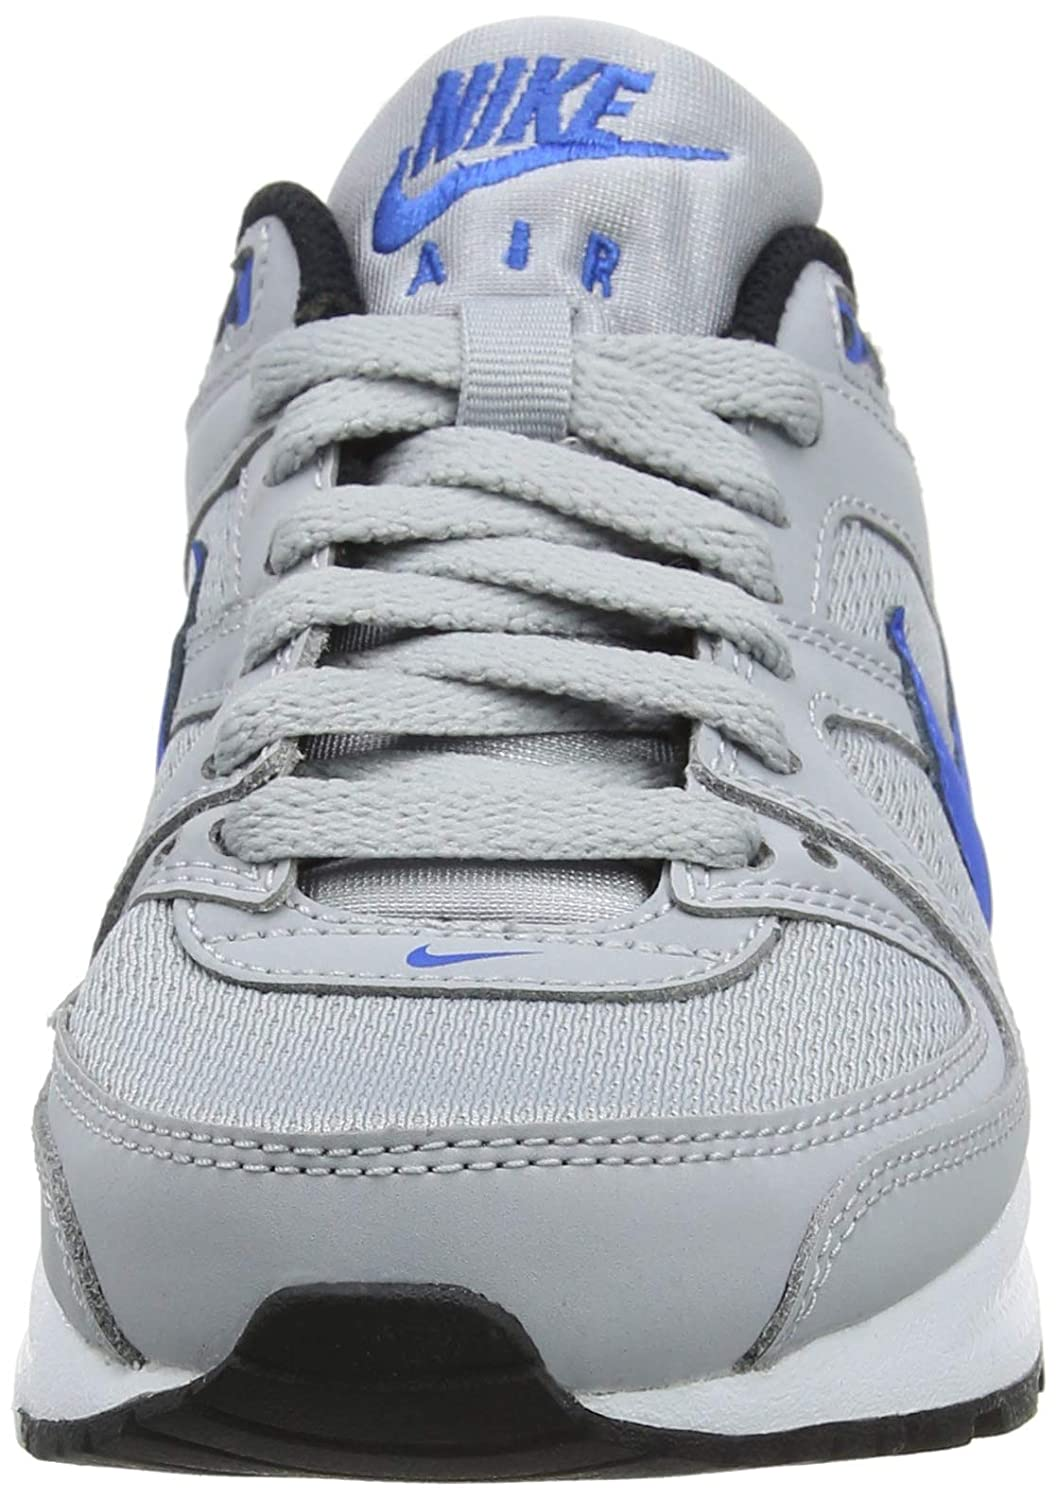 b7fc1f18dc0b Nike Boy s Air Max Command Flex (Gs) Running Shoes  Amazon.co.uk  Shoes    Bags